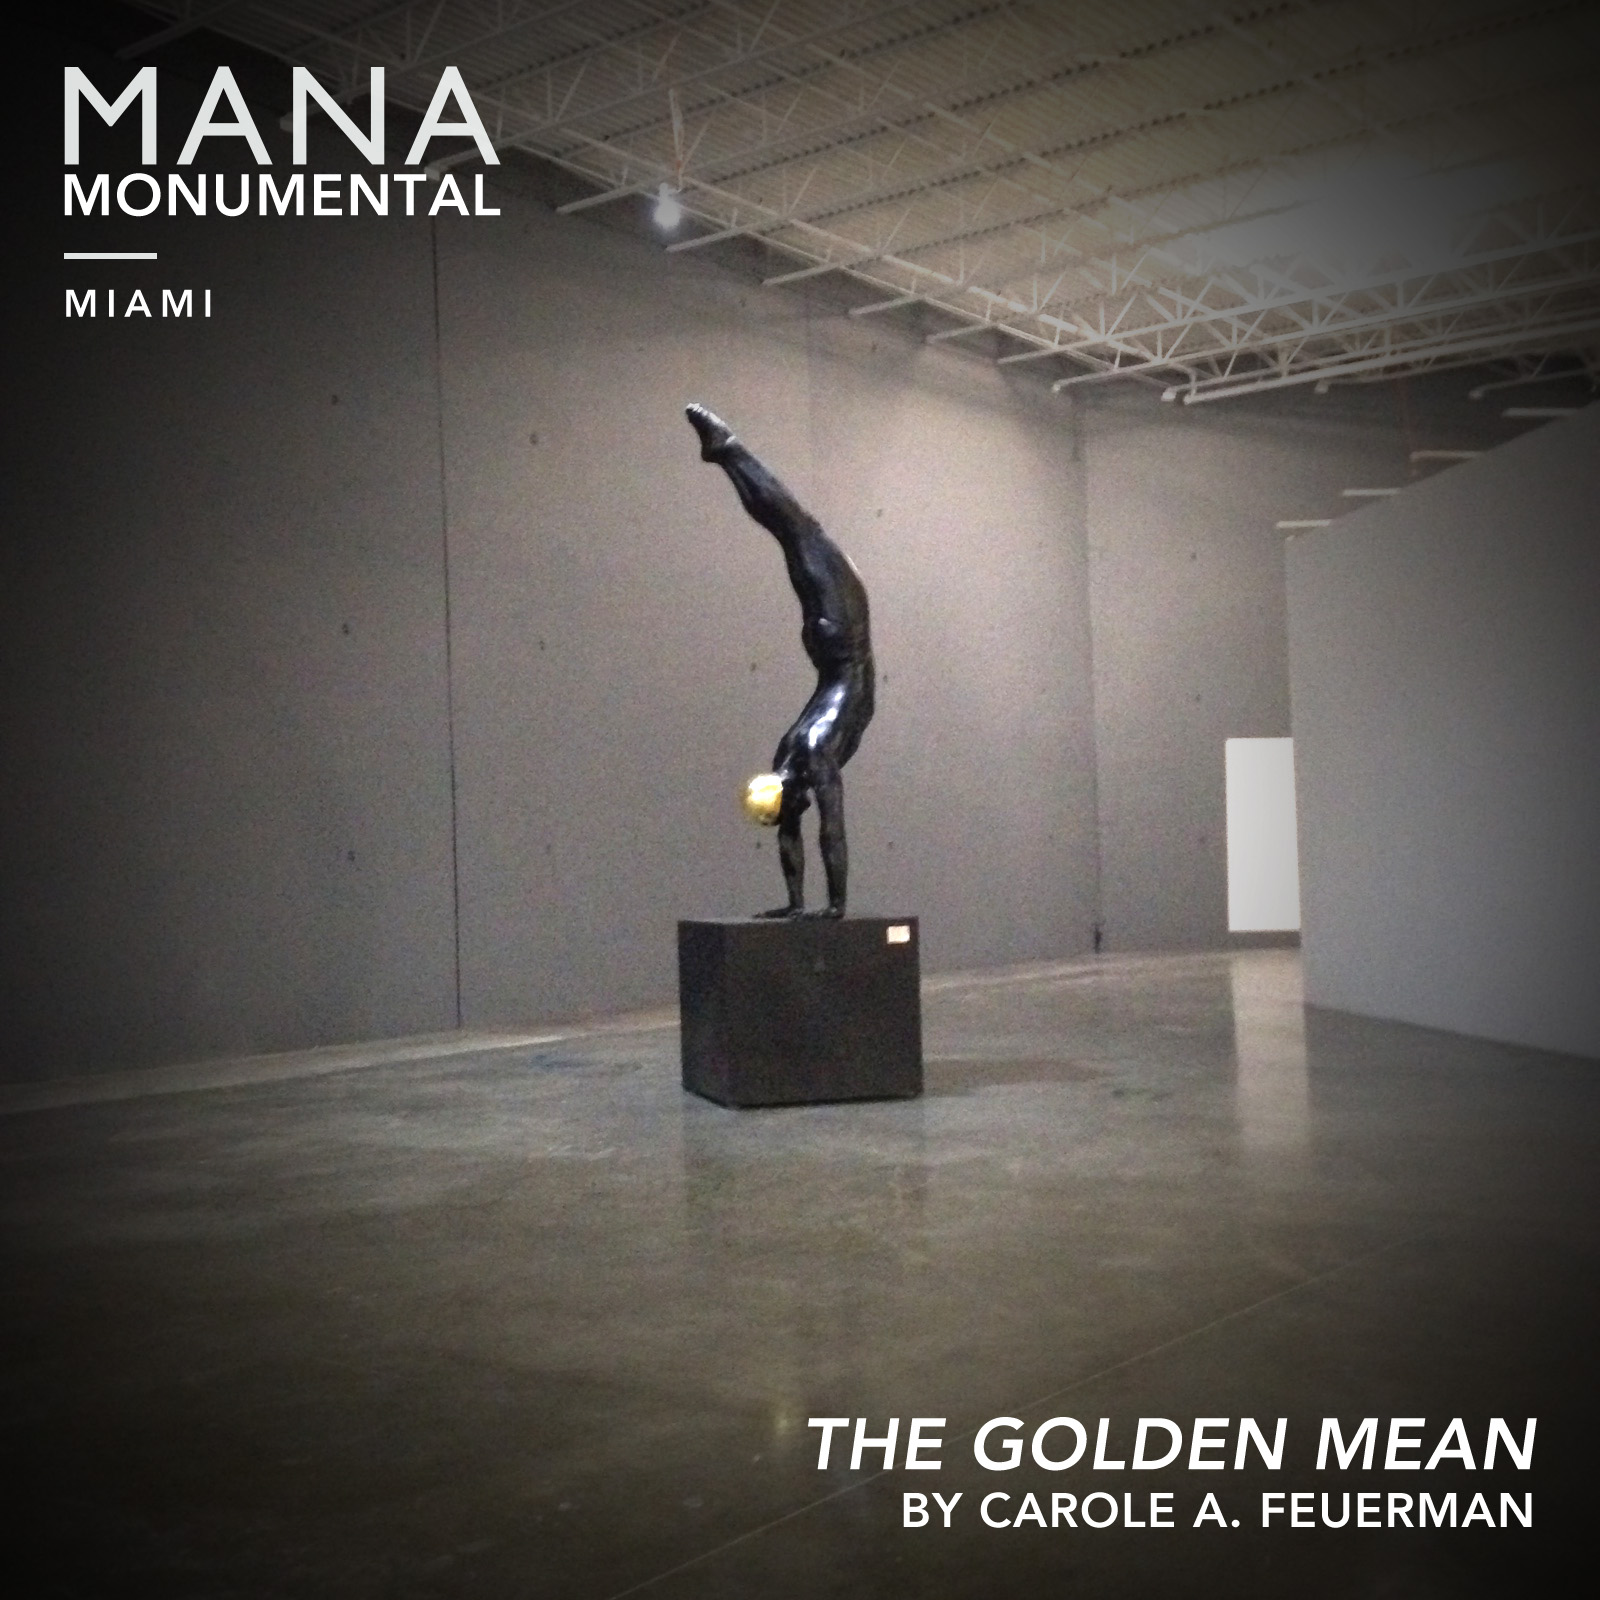 The Golden Mean   greets visitors as they enter  Mana's Wynwood  campus.